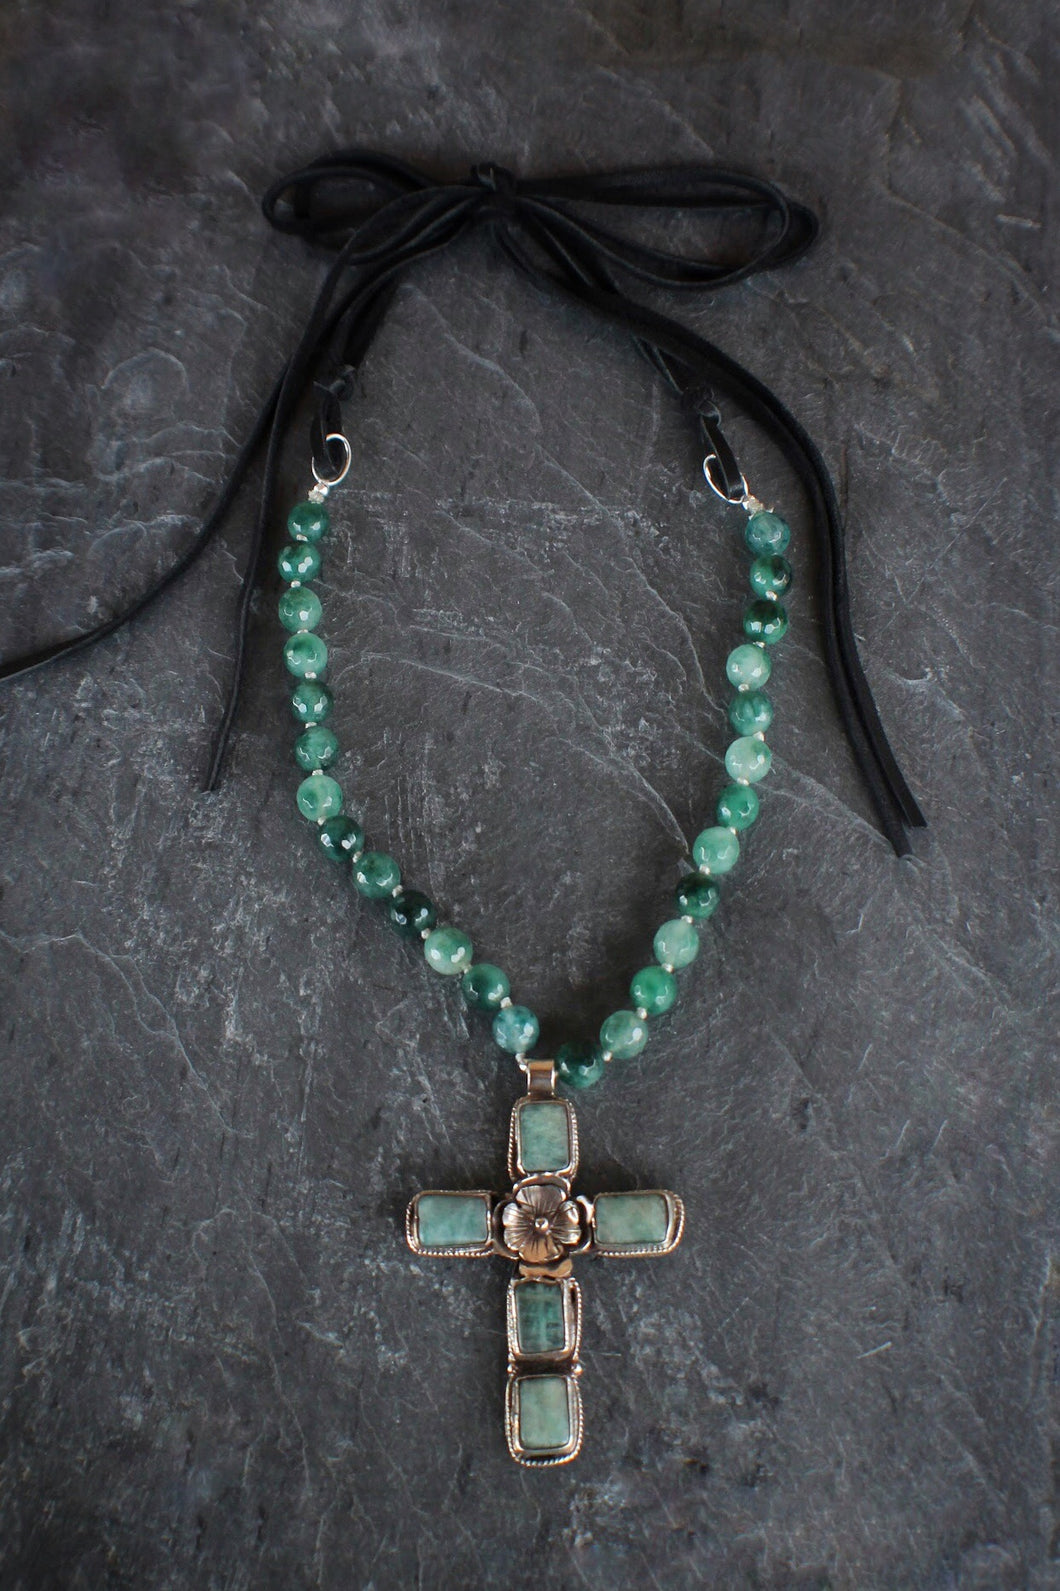 Moss Agate, Amazonite Cross, & Suede Necklace